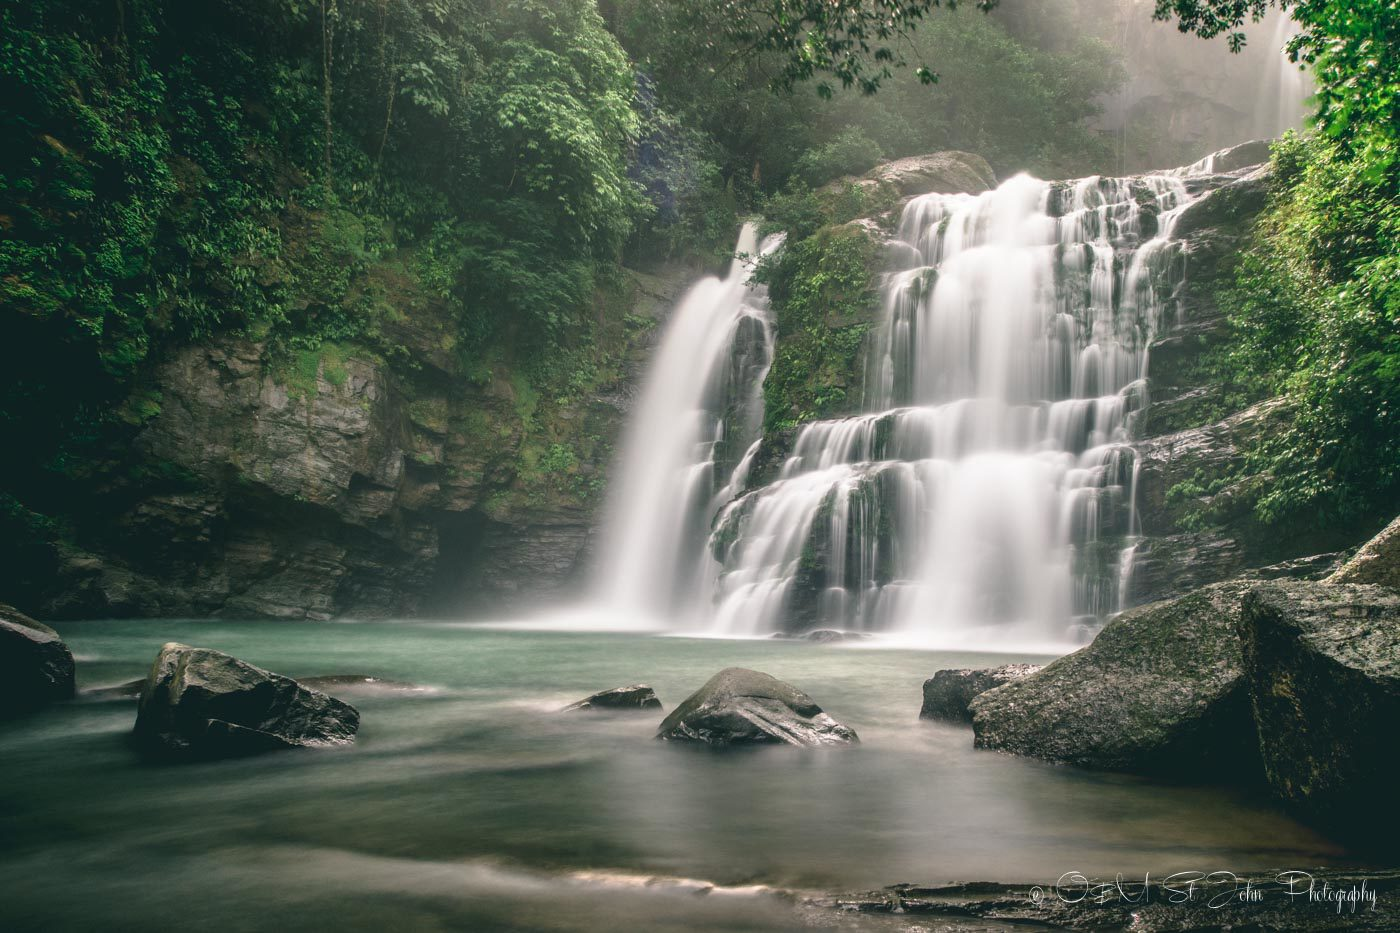 Nuayaca Waterfall, Dominical Costa Rica